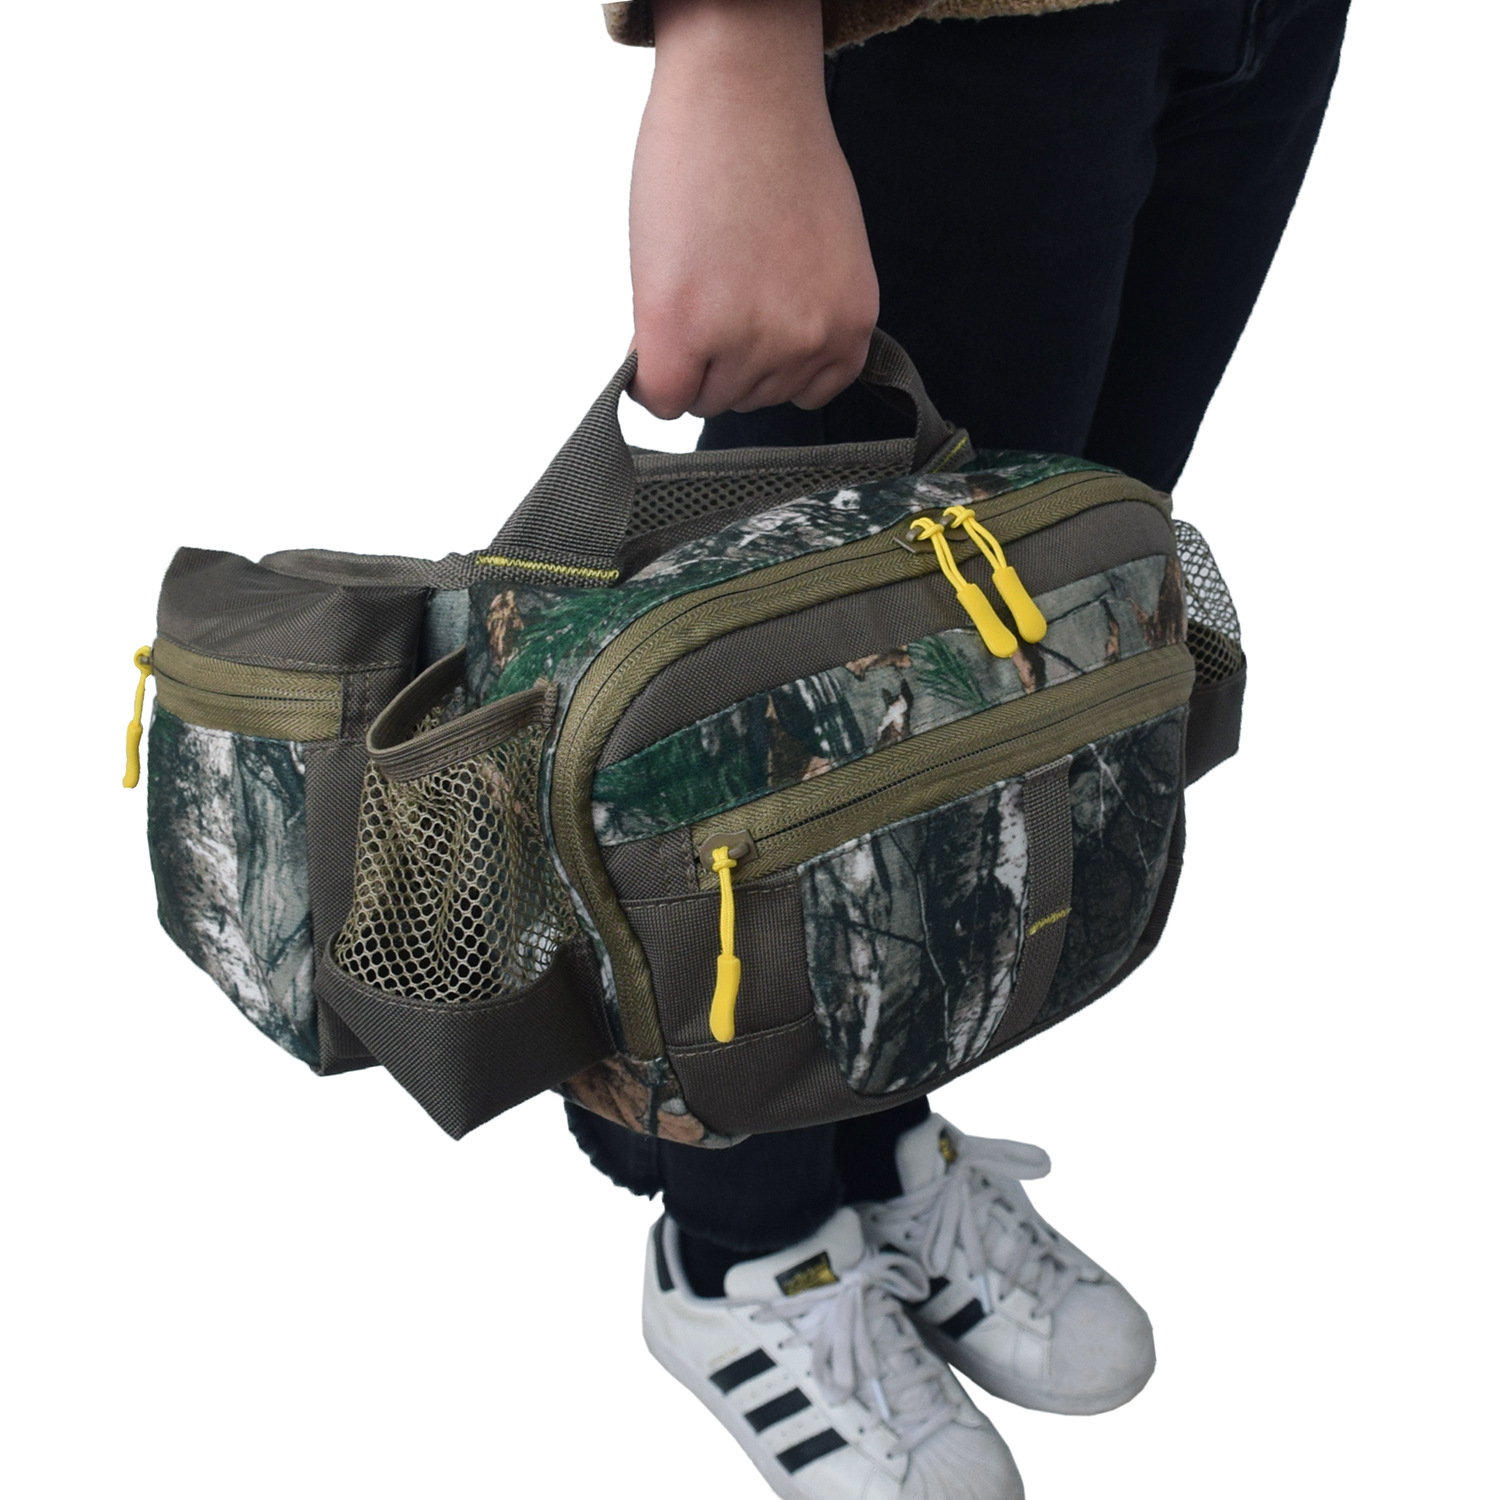 Outdoor Fleece Army Fans Supplies Camouflage Wallet Fishing Wallet Mountain Climbing Tactical Bag